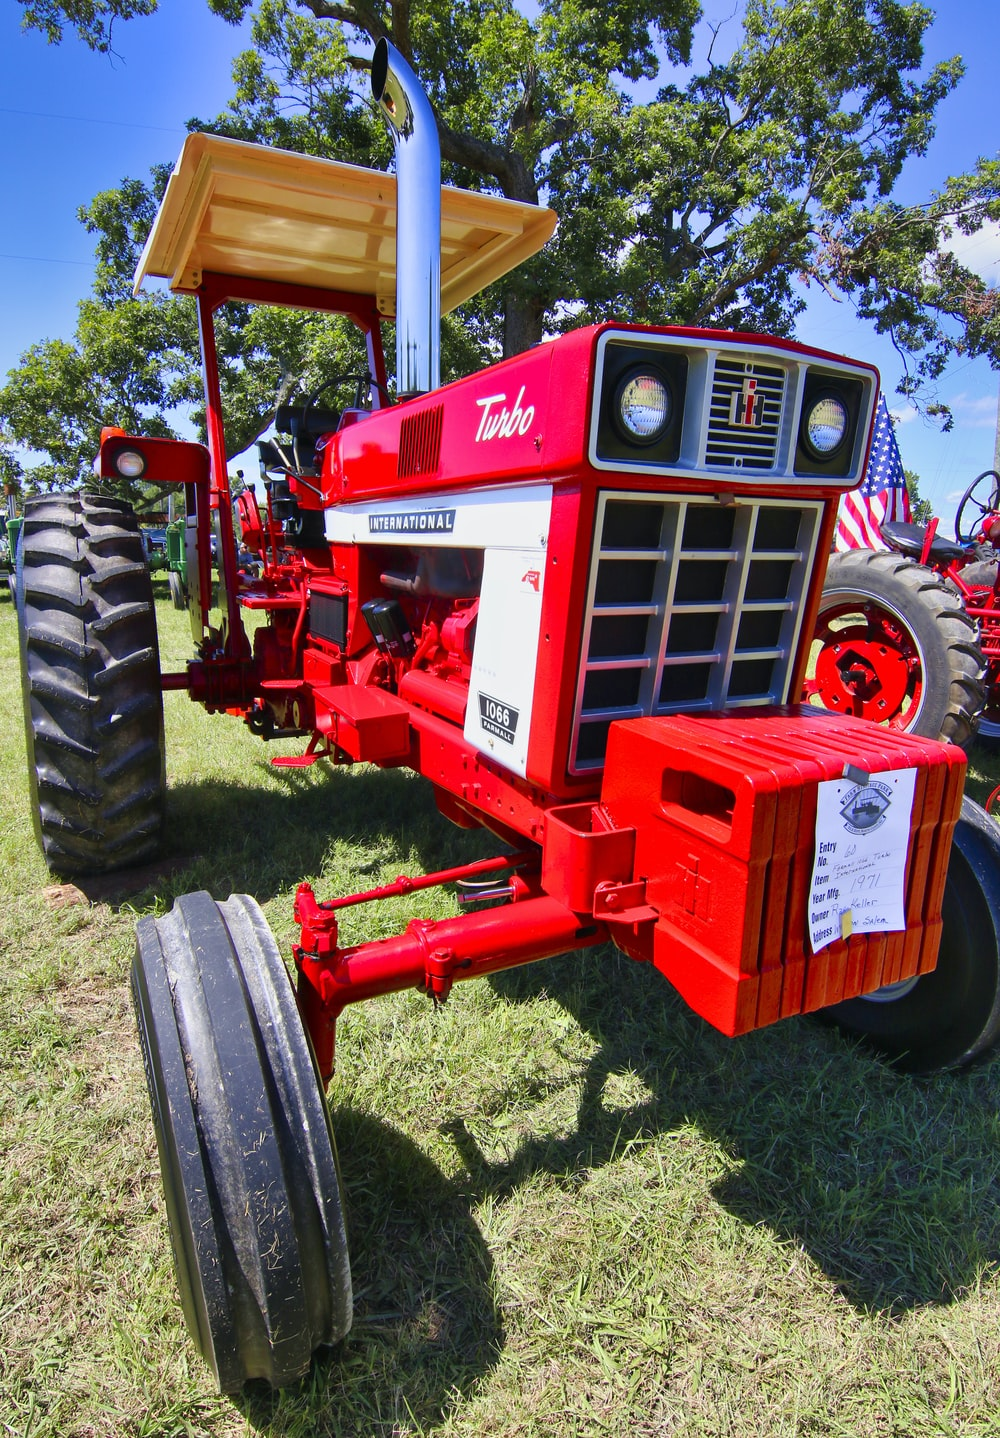 red and black tractor on green grass field during daytime